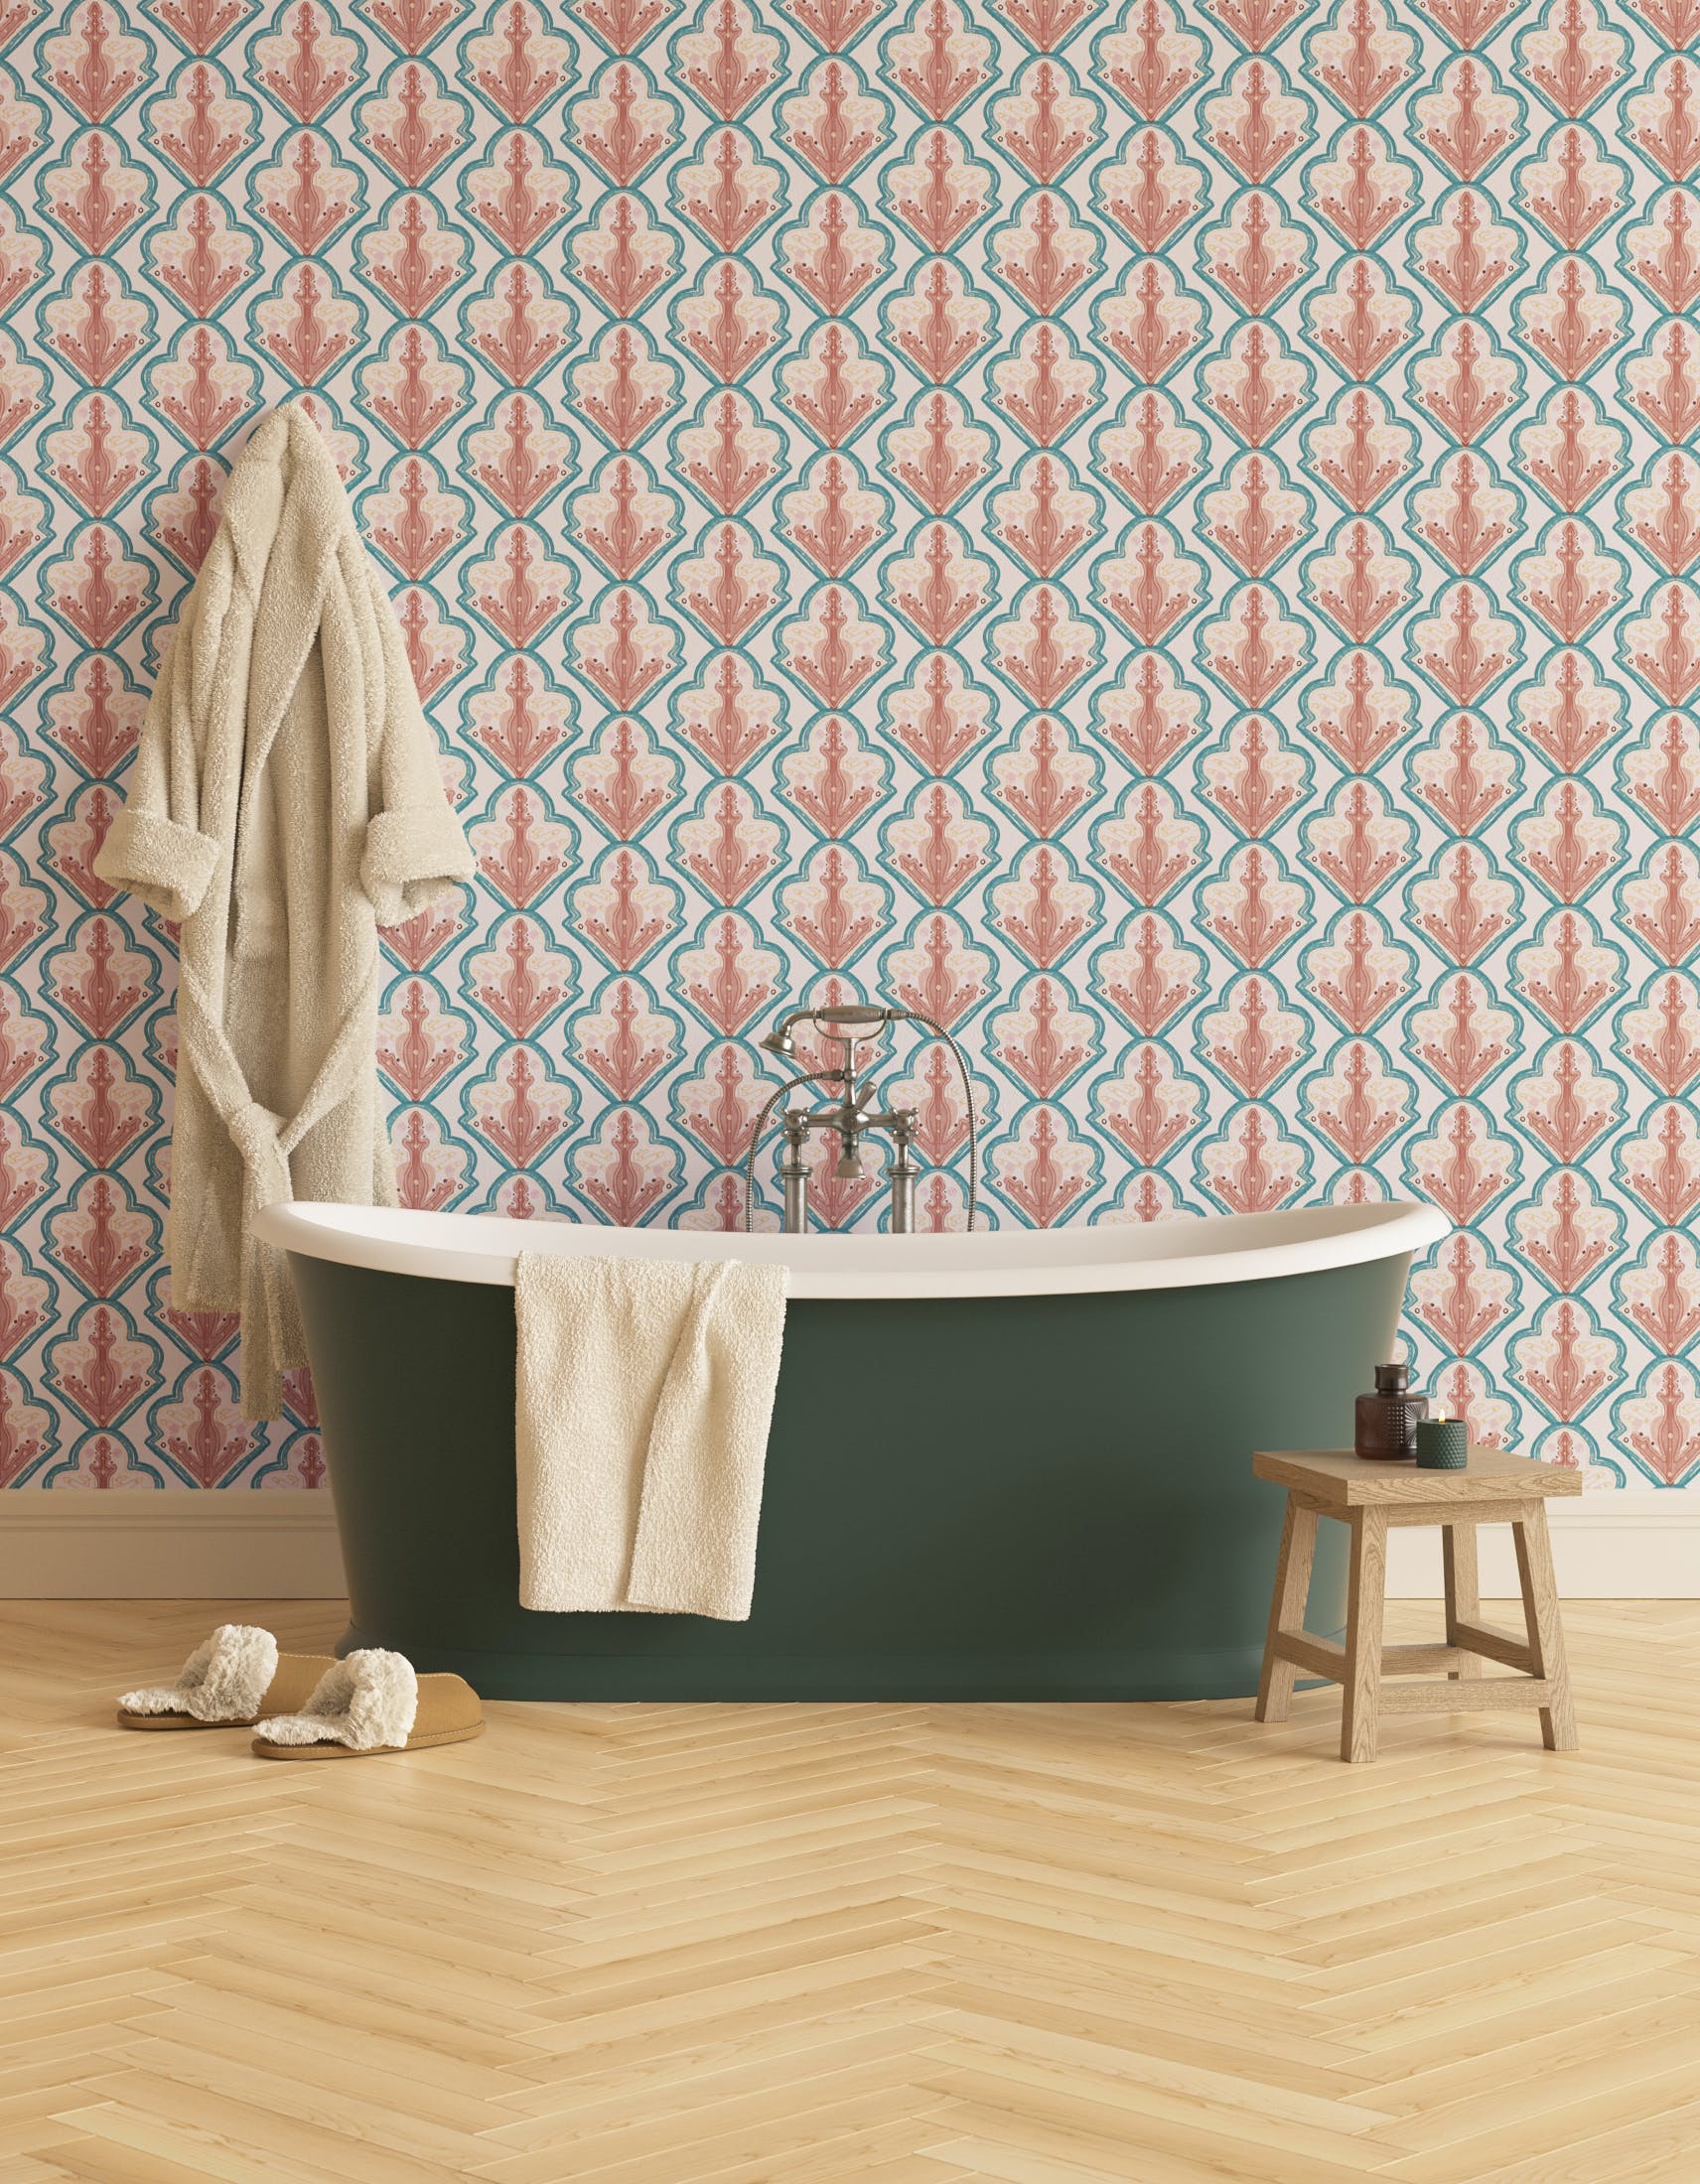 Bathroom decorated with Lick x Lottie McDowell Travelling Tiles 01 mosaic wallpaper